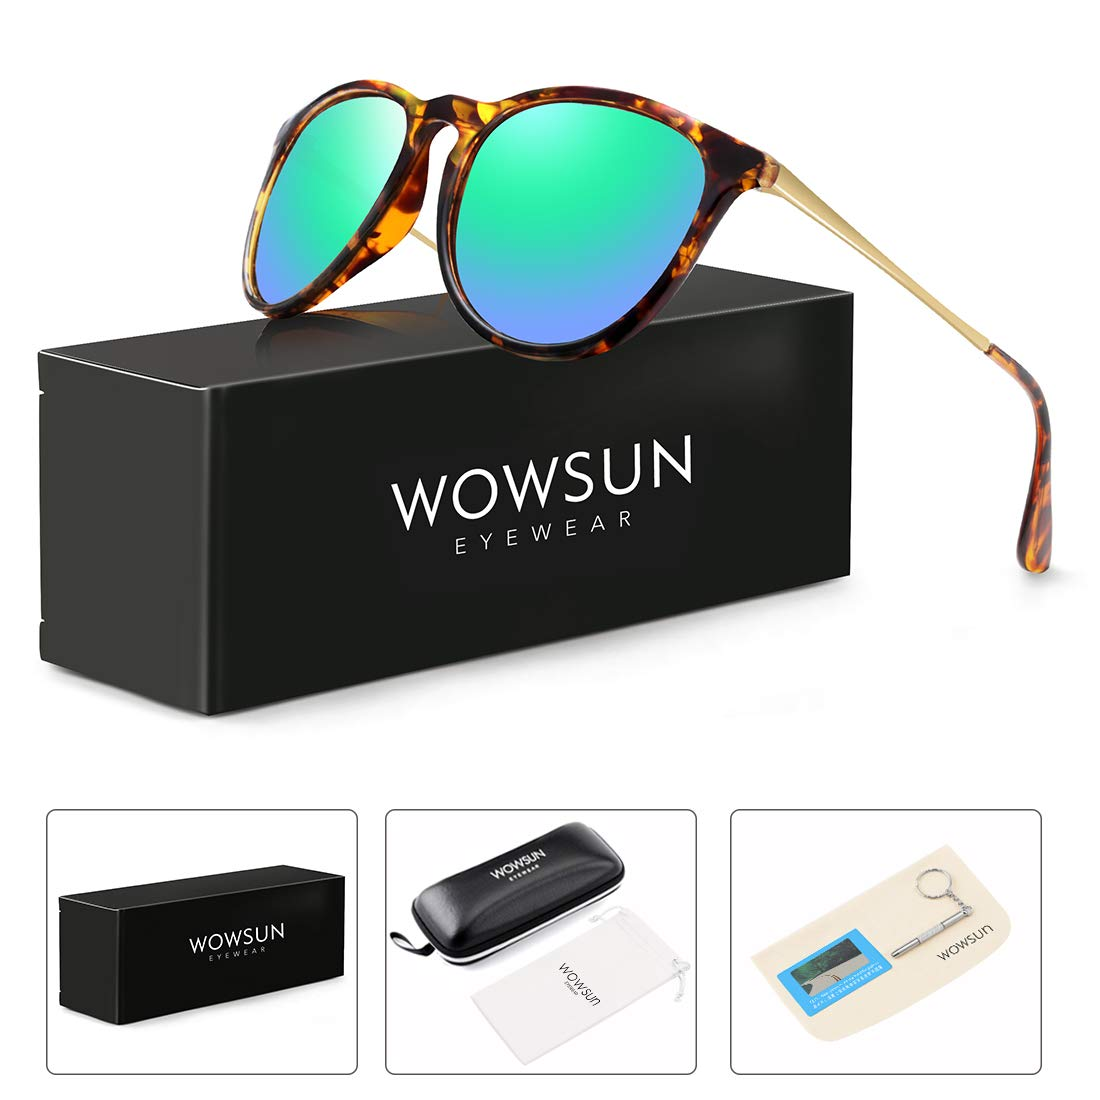 WOWSUN Polarized Sunglasses for Women Vintage Retro Round Mirrored Lens (Amber(tortoise) Frame + Green Mirrored Lens, 55)